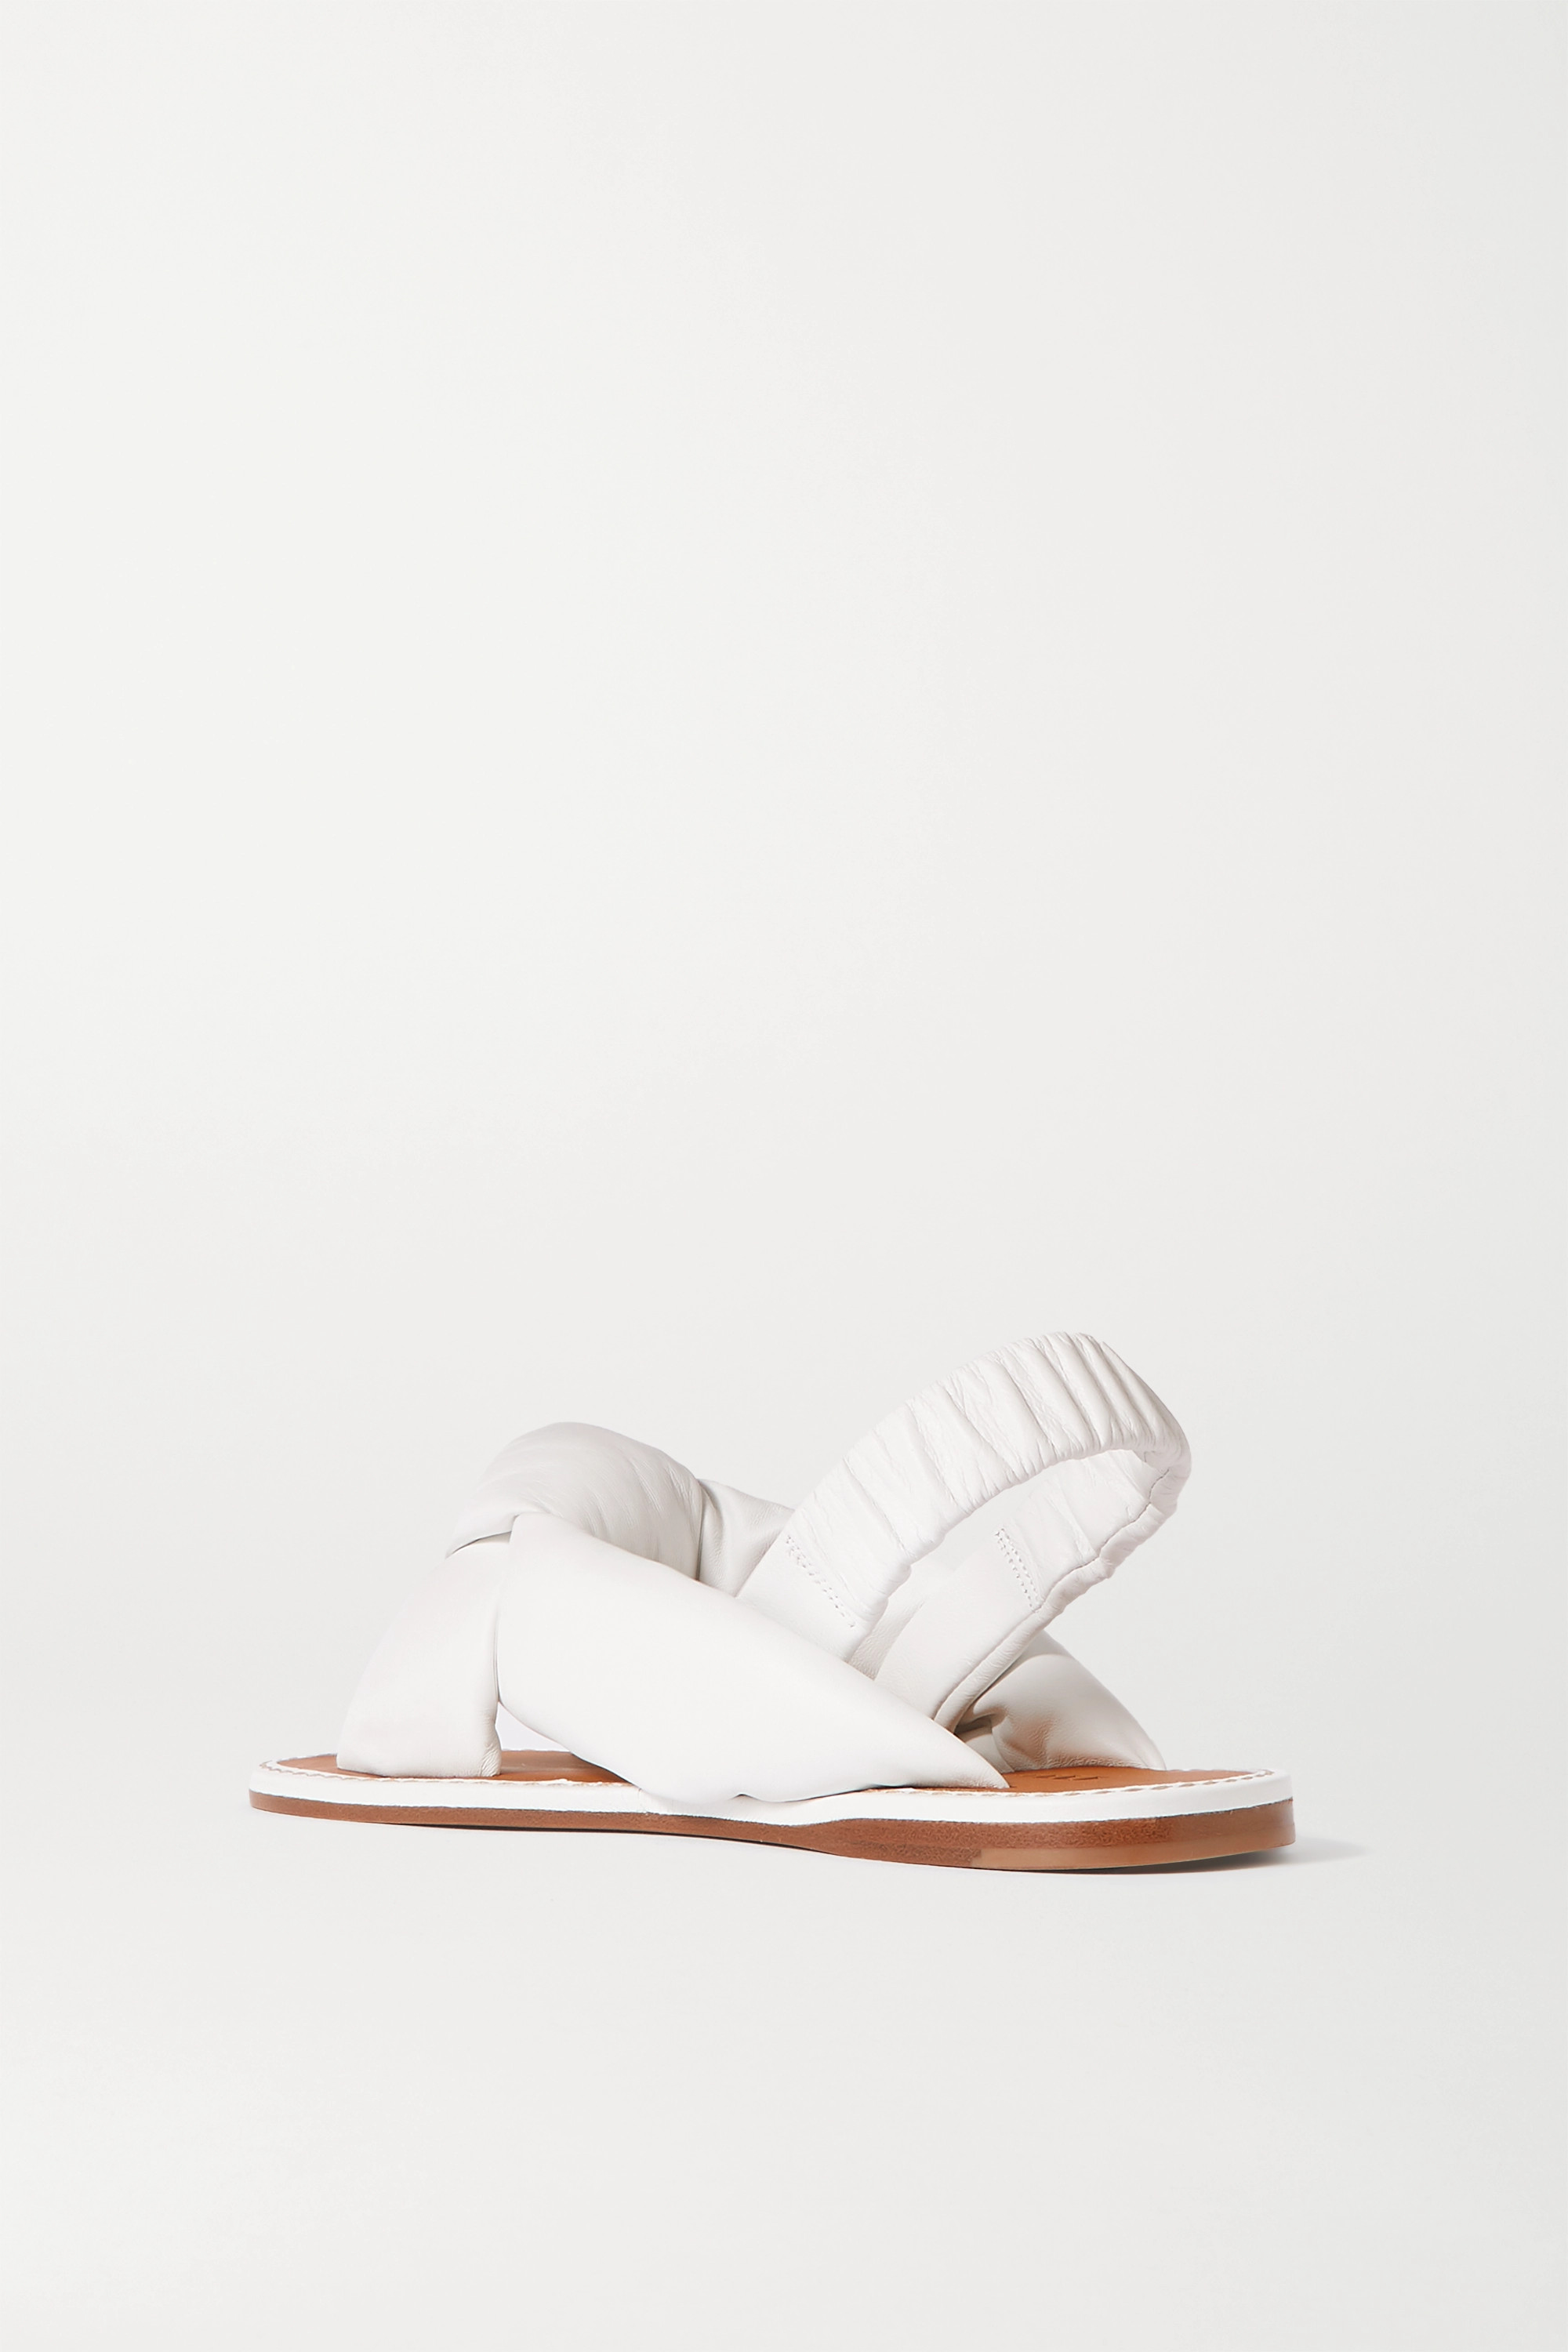 White Knotted Leather Sandals | Miu